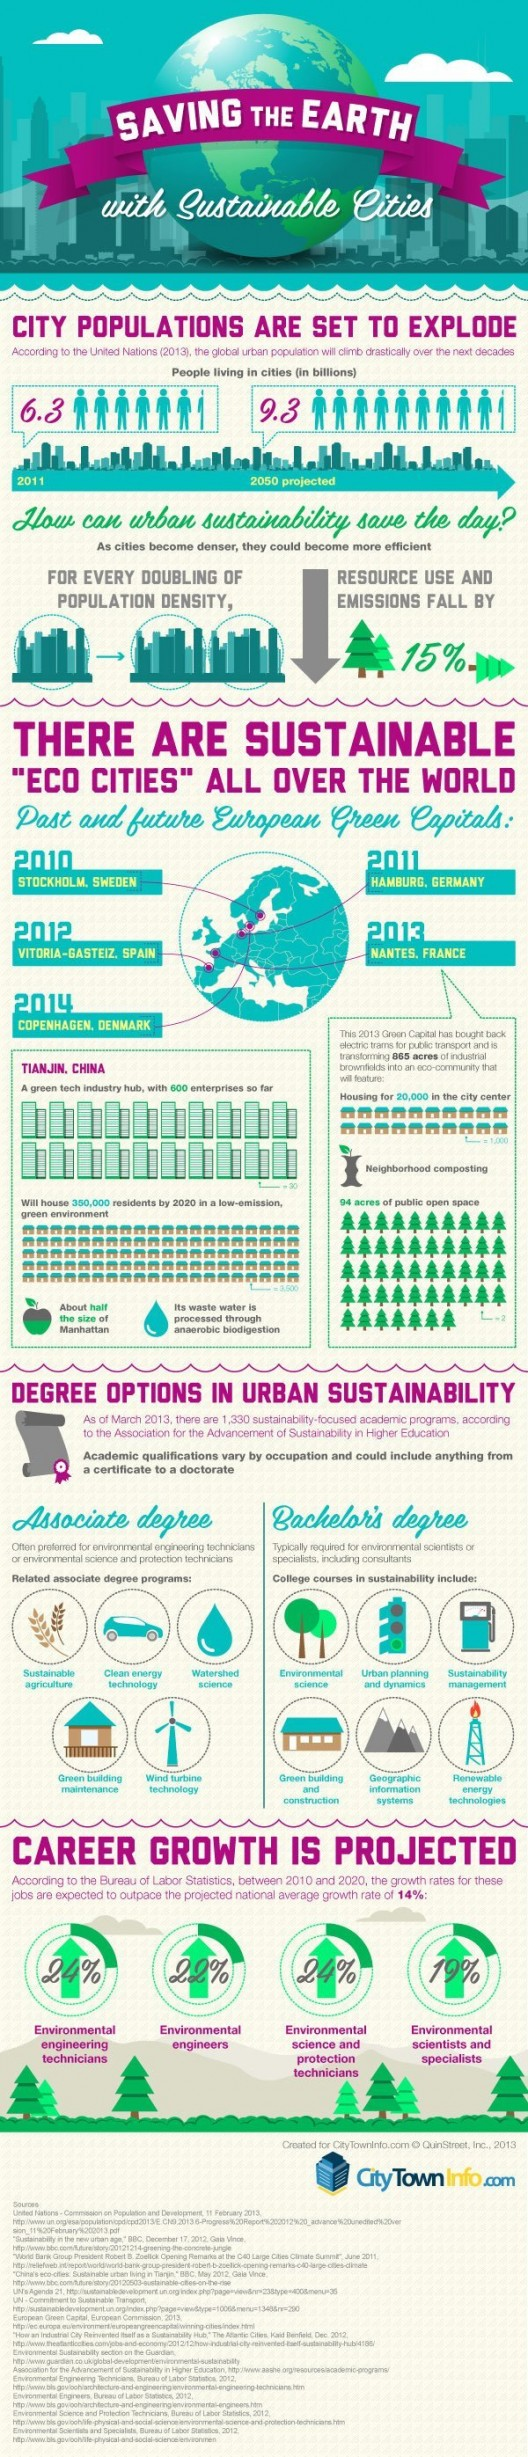 19. Saving the Earth with Sustainable Cities  - Saving The Earth With Sustainable Cities